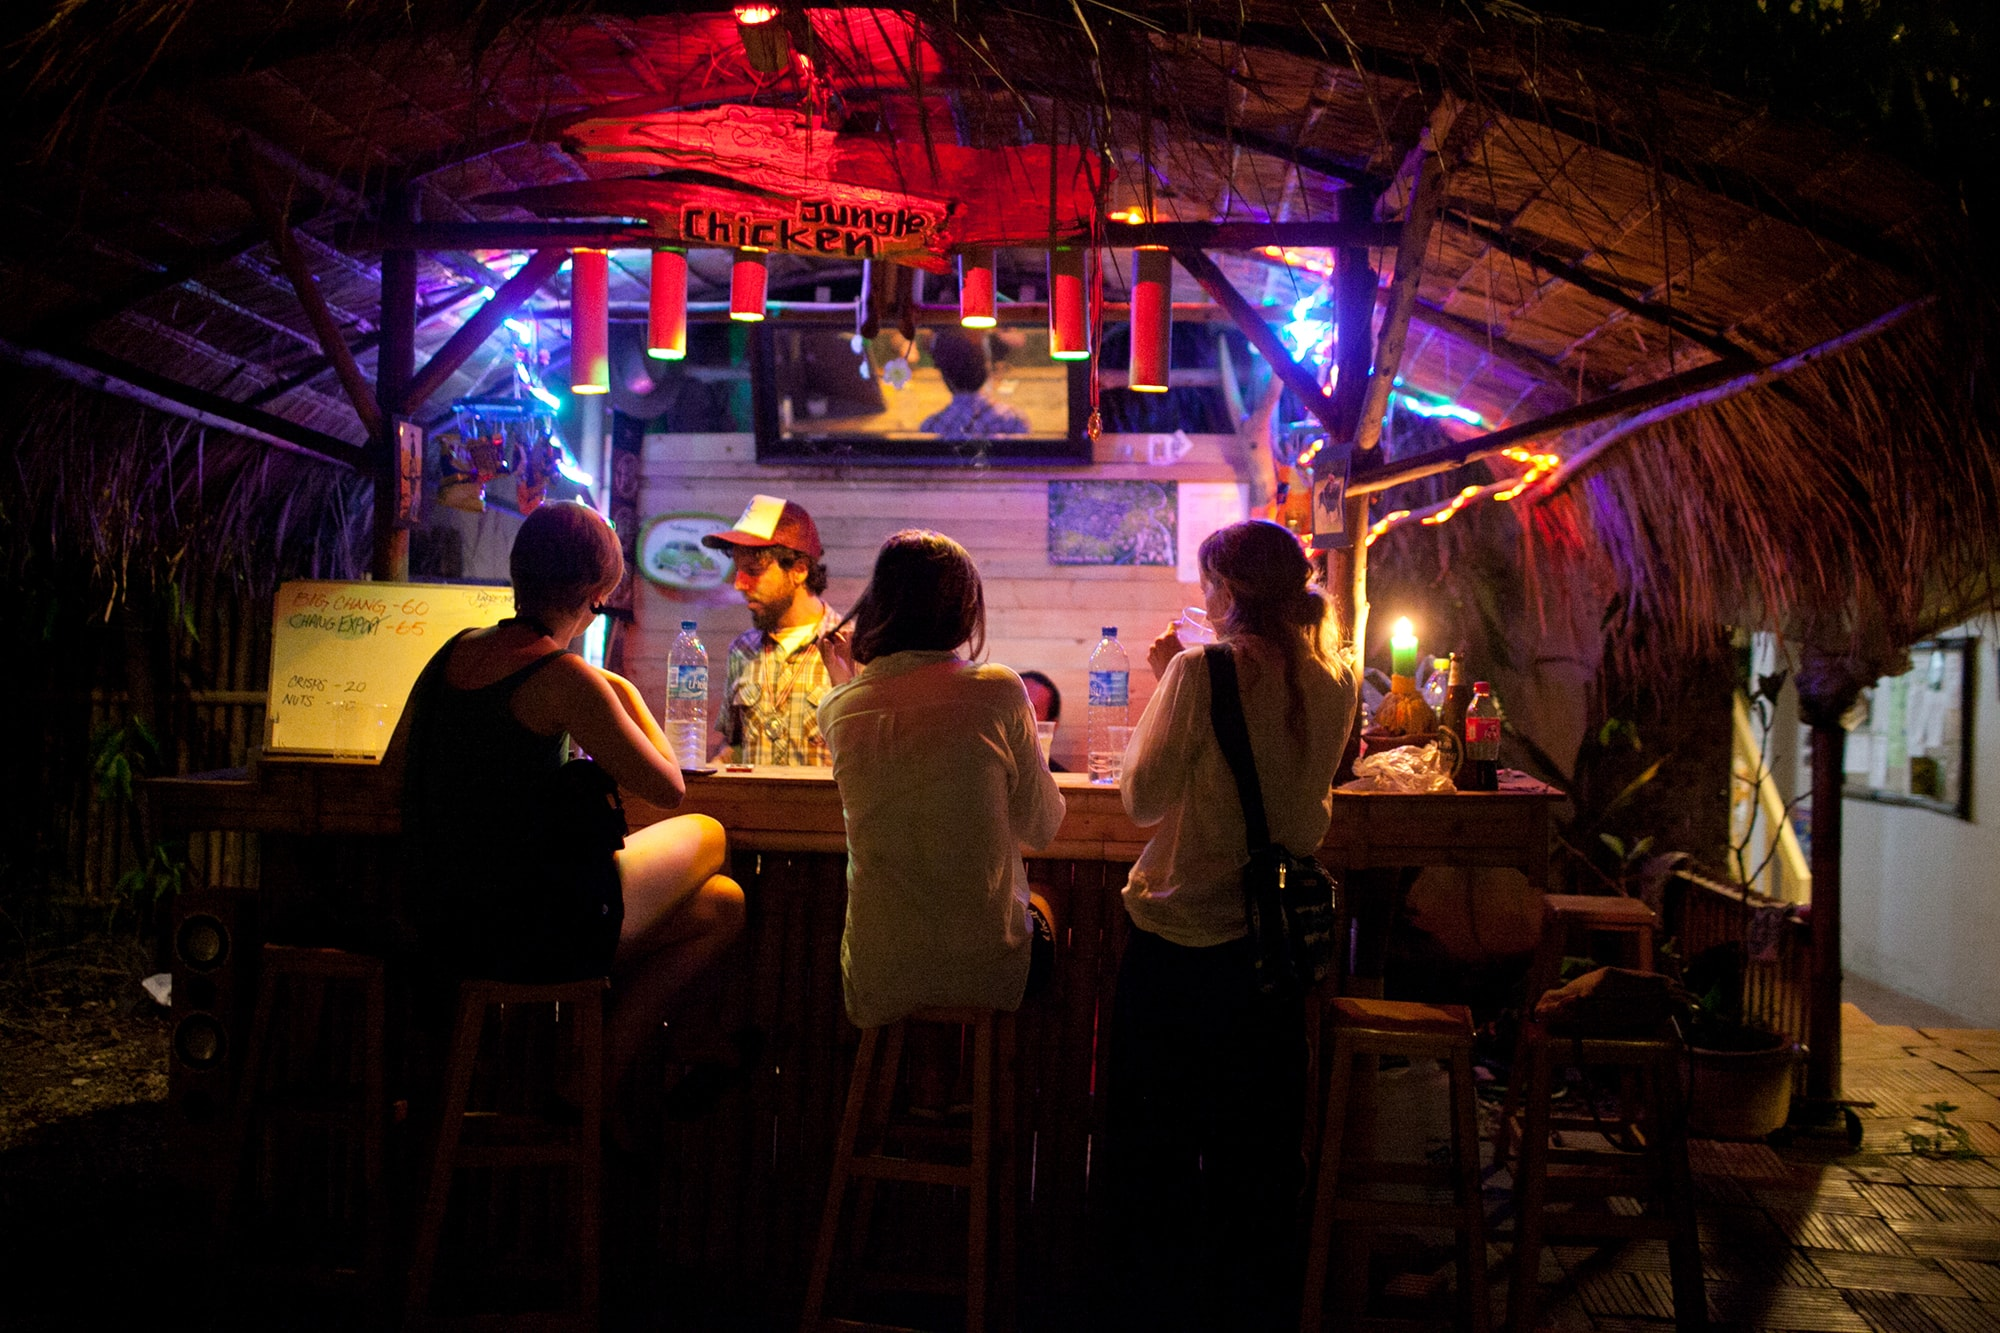 Fourth of July at Deejai Backpackers in Chiang Mai, Thailand